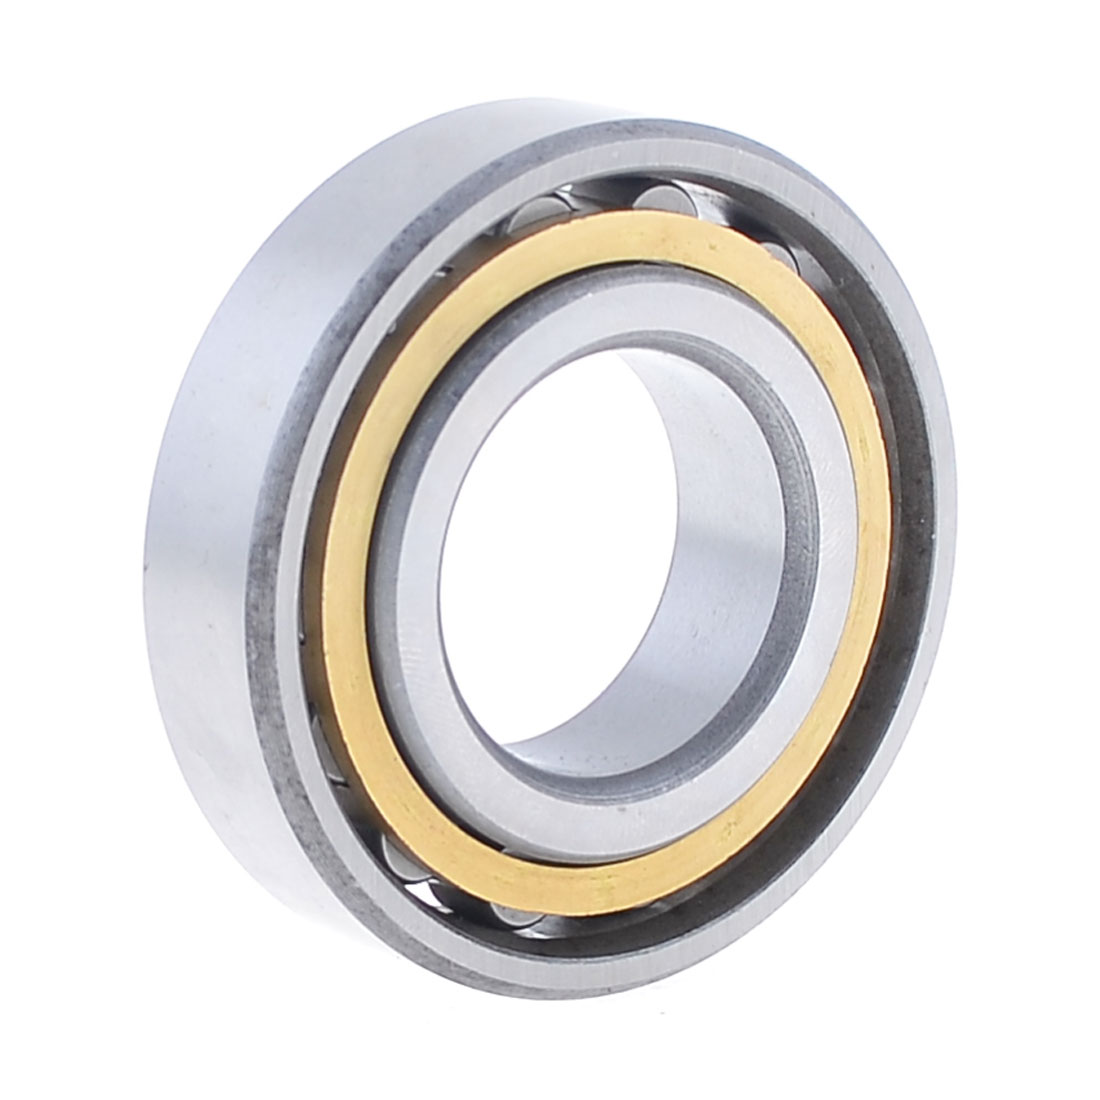 Cylindrical 30mm x 62mm x 16mm Taper Tapered Roller Bearings RN206M